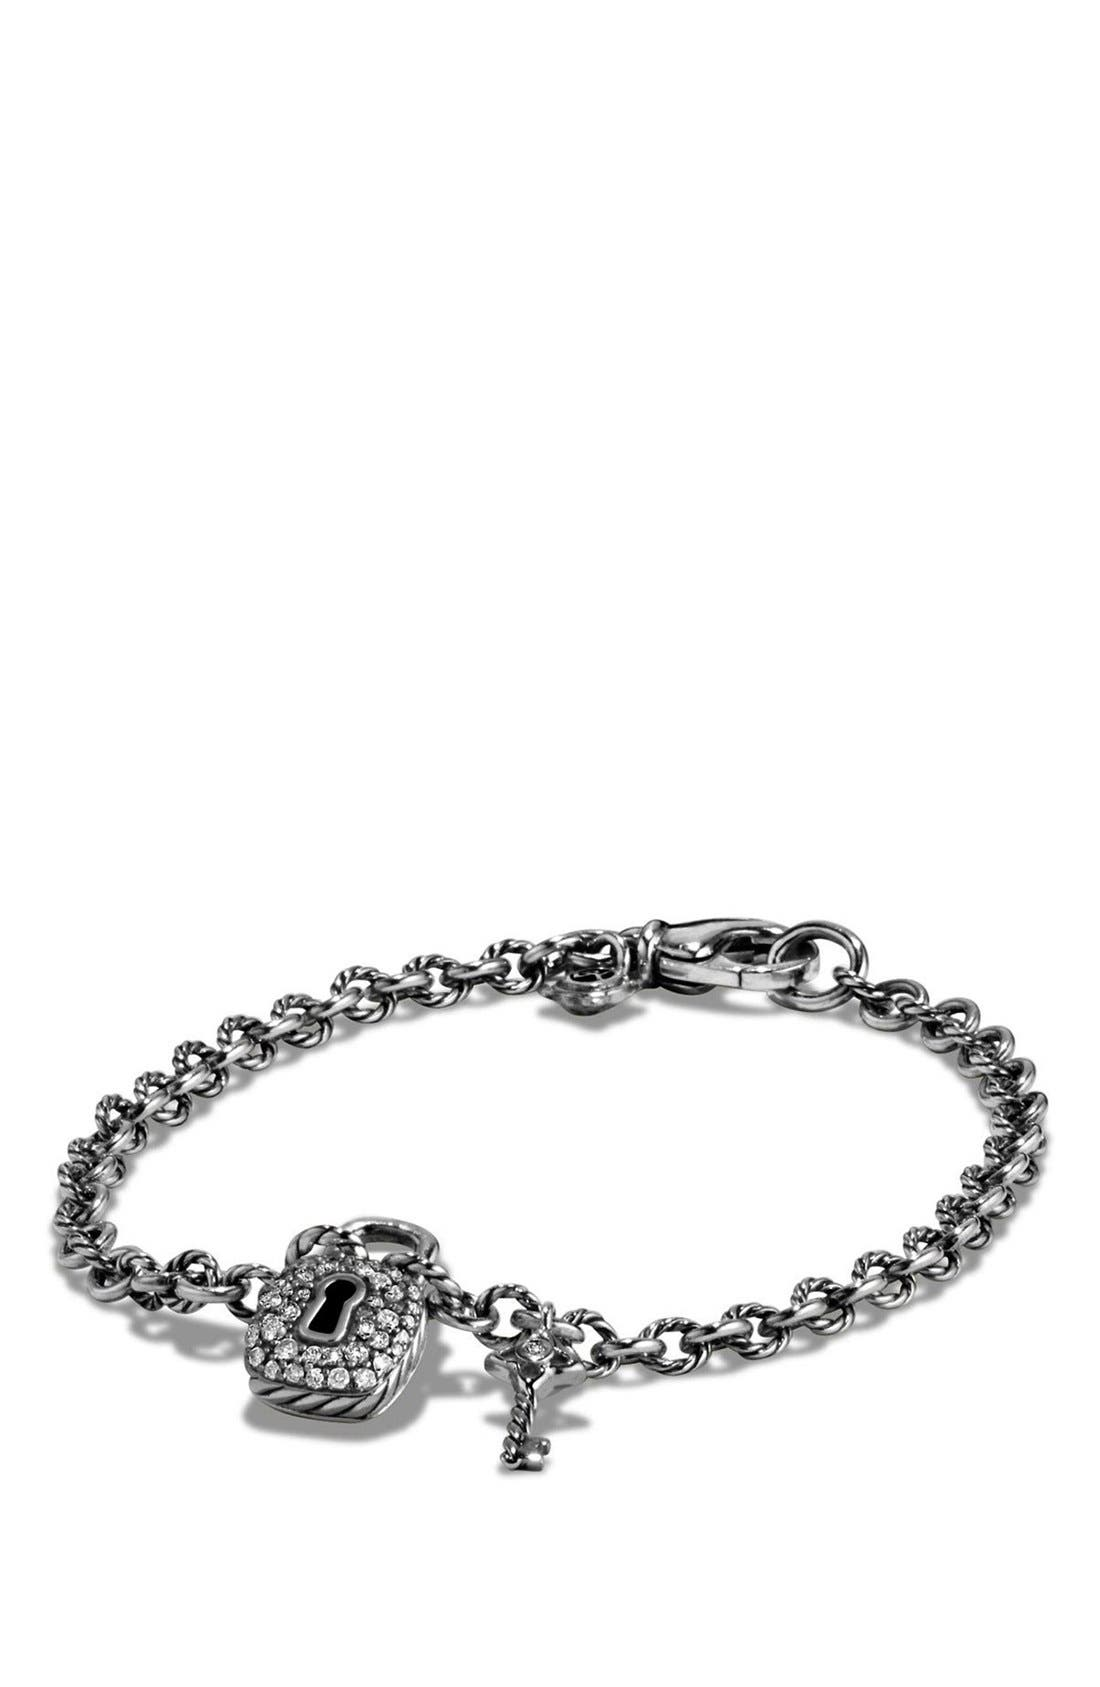 Alternate Image 1 Selected - David Yurman 'Cable Collectibles' Lock and Key Charm Bracelet with Diamonds